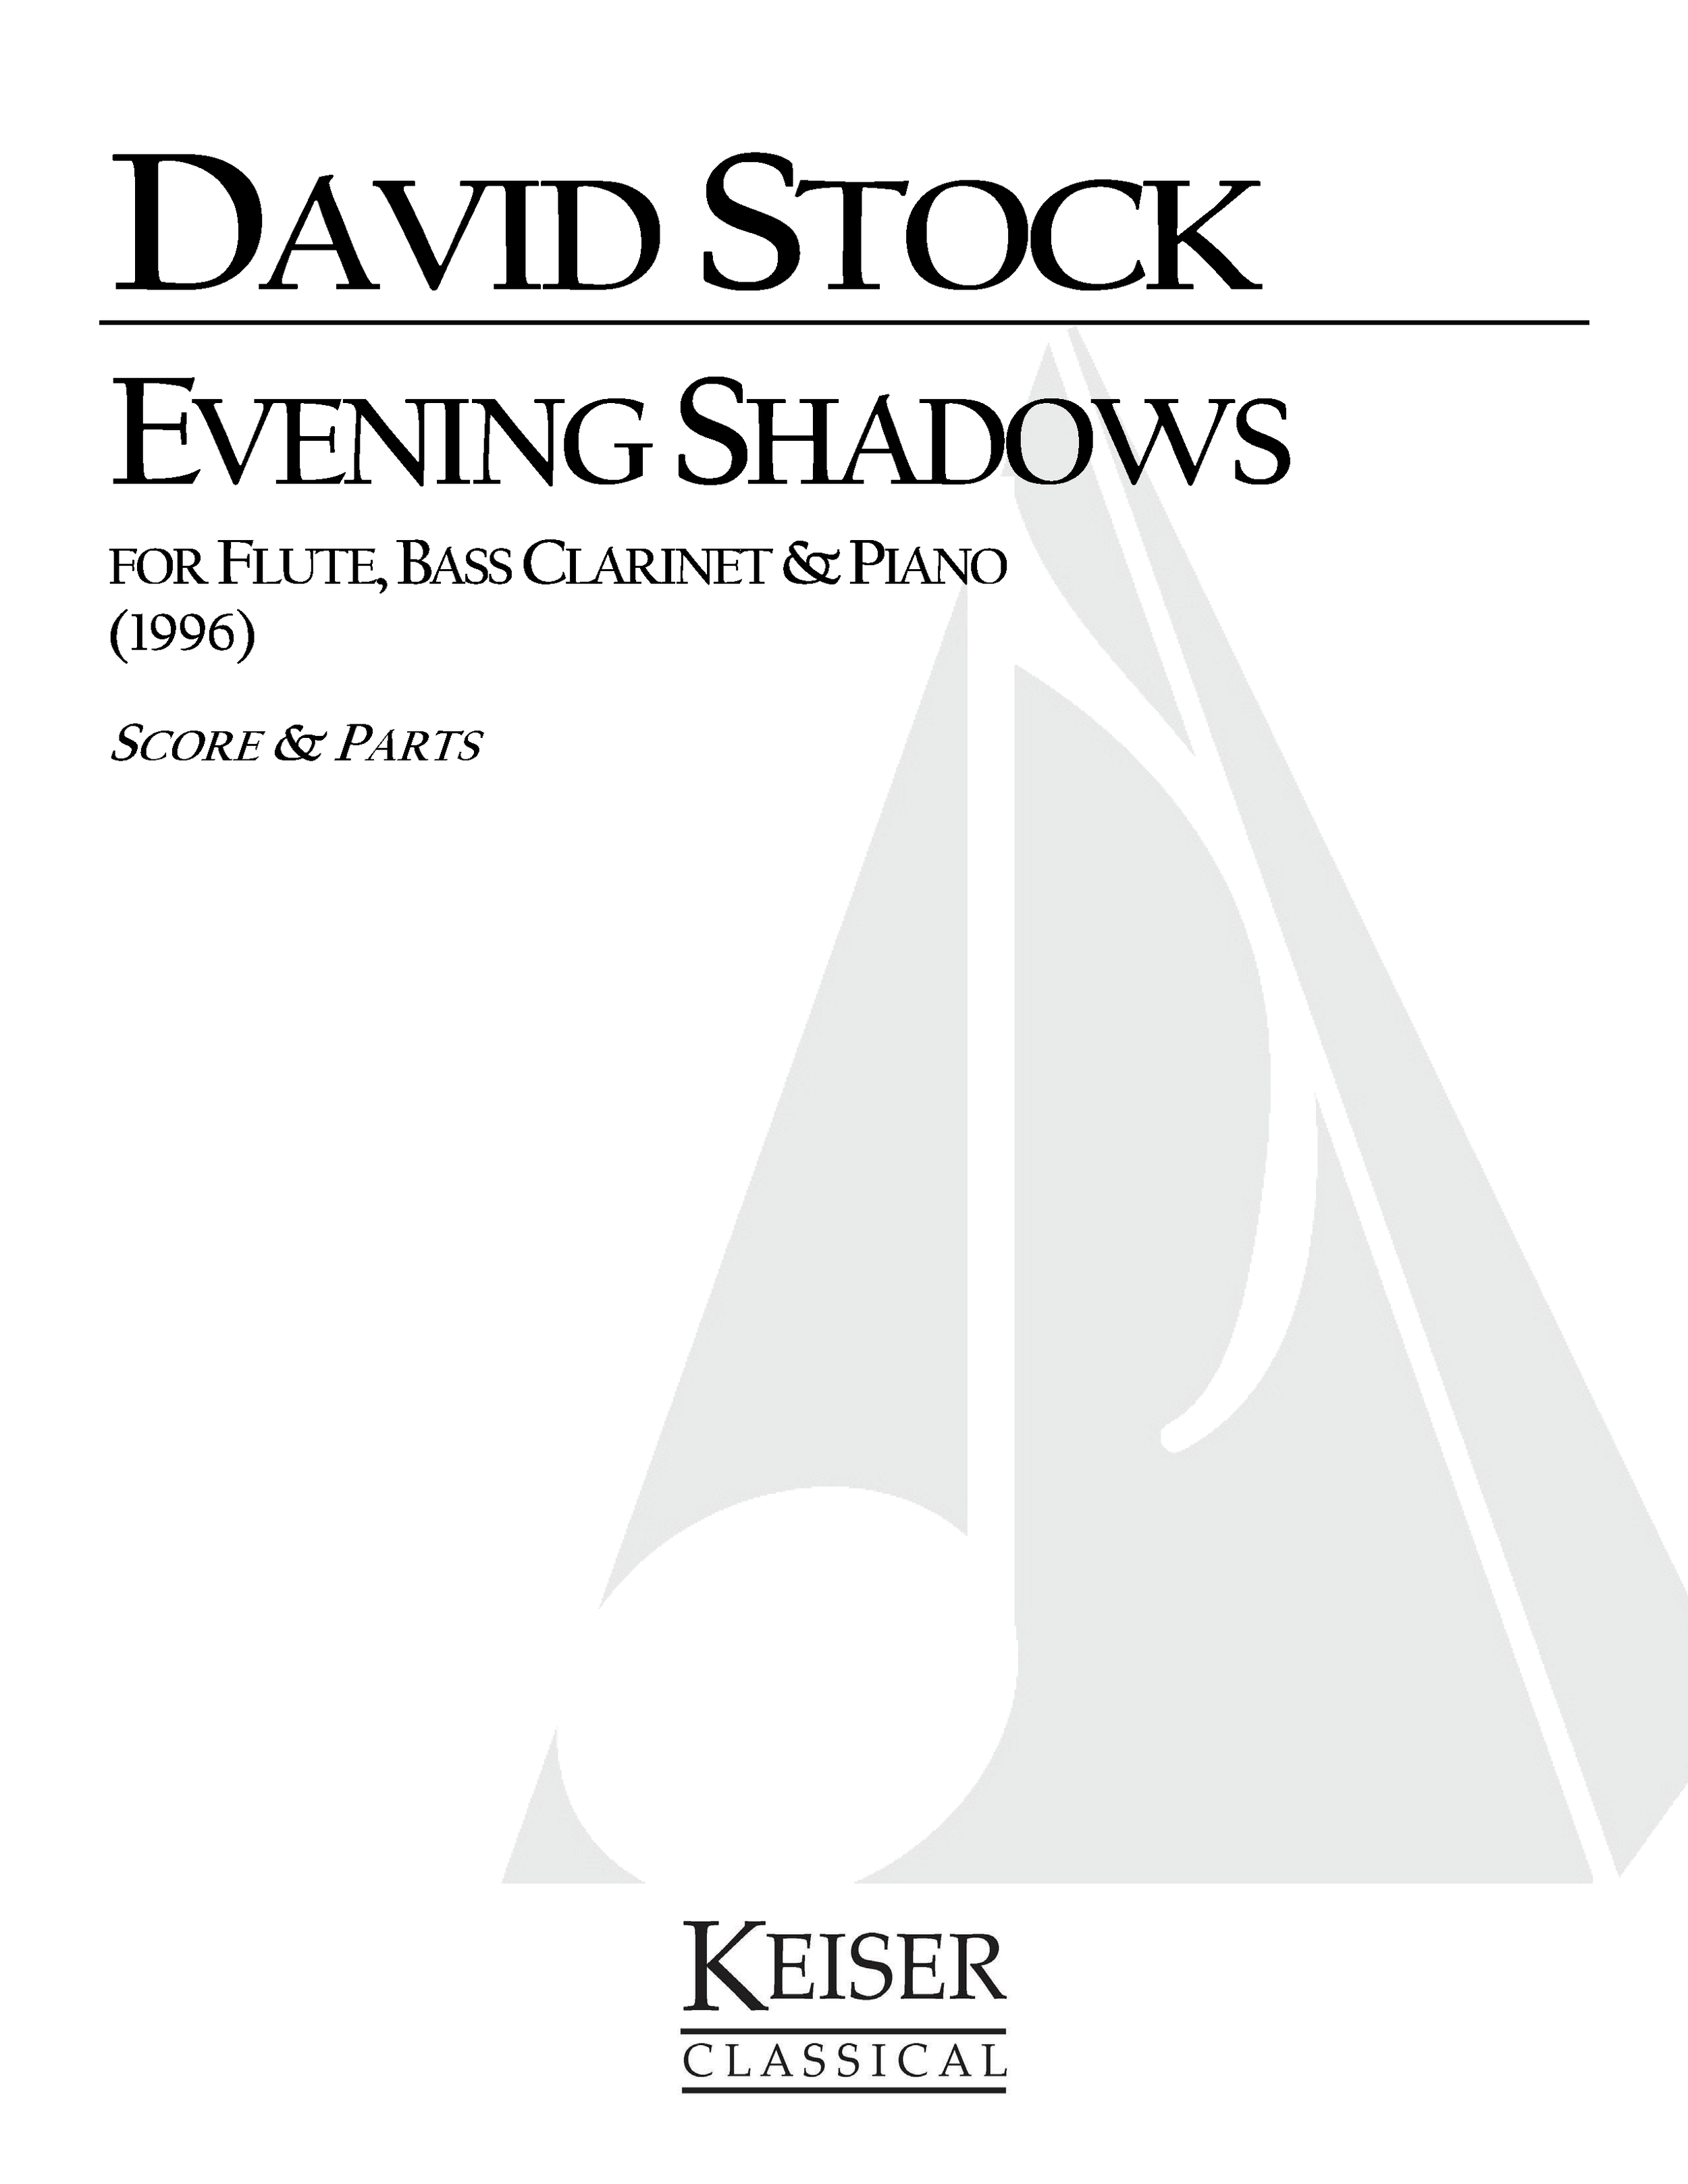 Evening Shadows (1996) - Flute, Bass Clarinet & PianoRent/Buy: Keiser Music